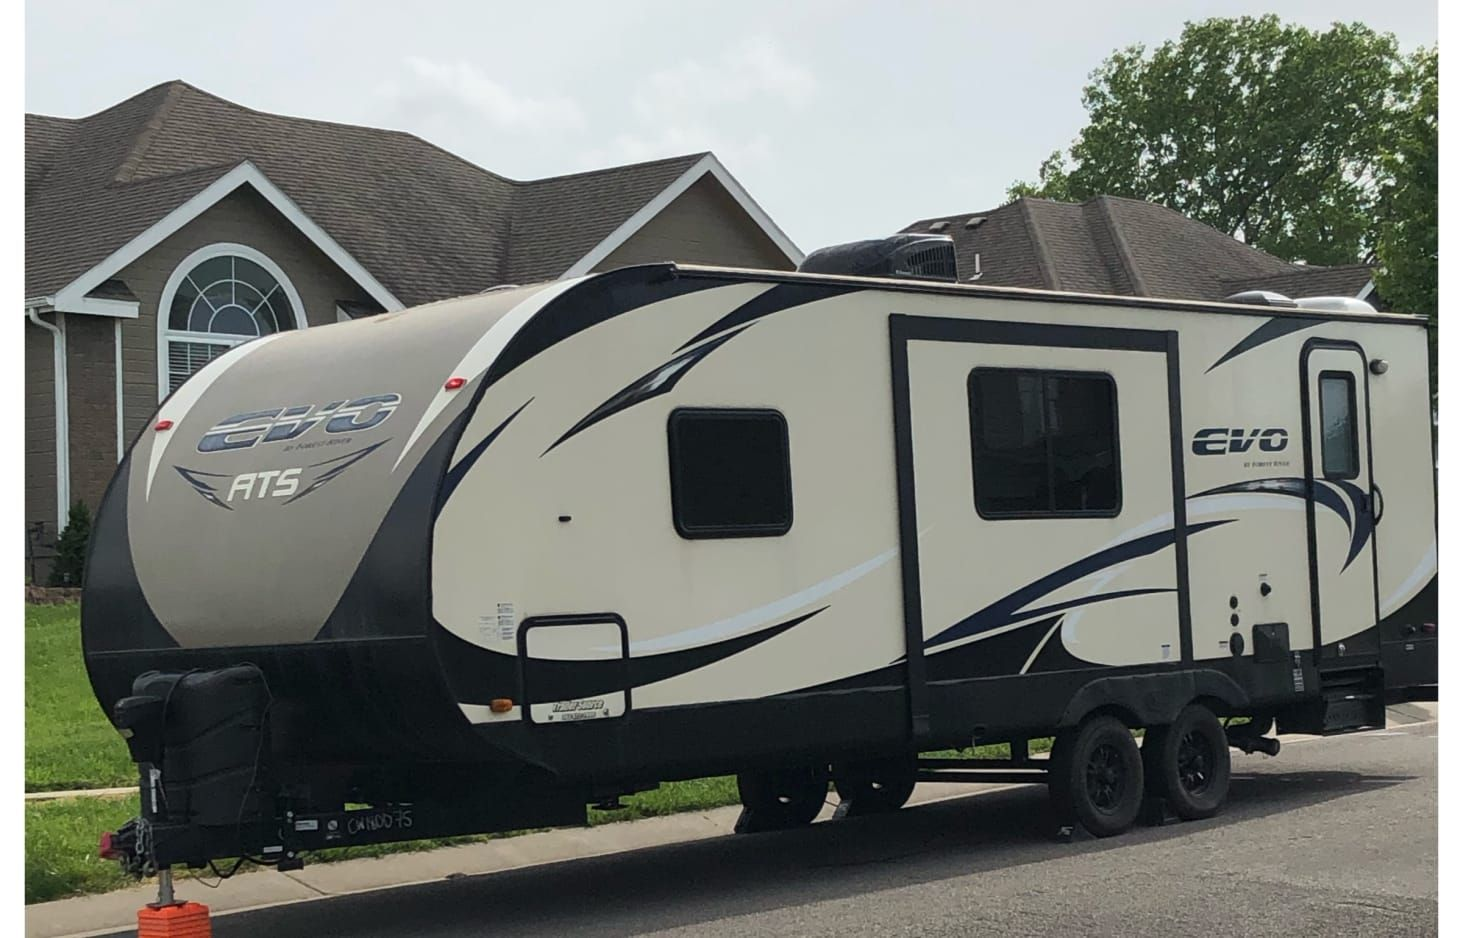 2016 Forest River Rv Evo Ats 240bh Rv Rental In Topeka Ks Rvshare Forest River Rv Rv Rental Topeka